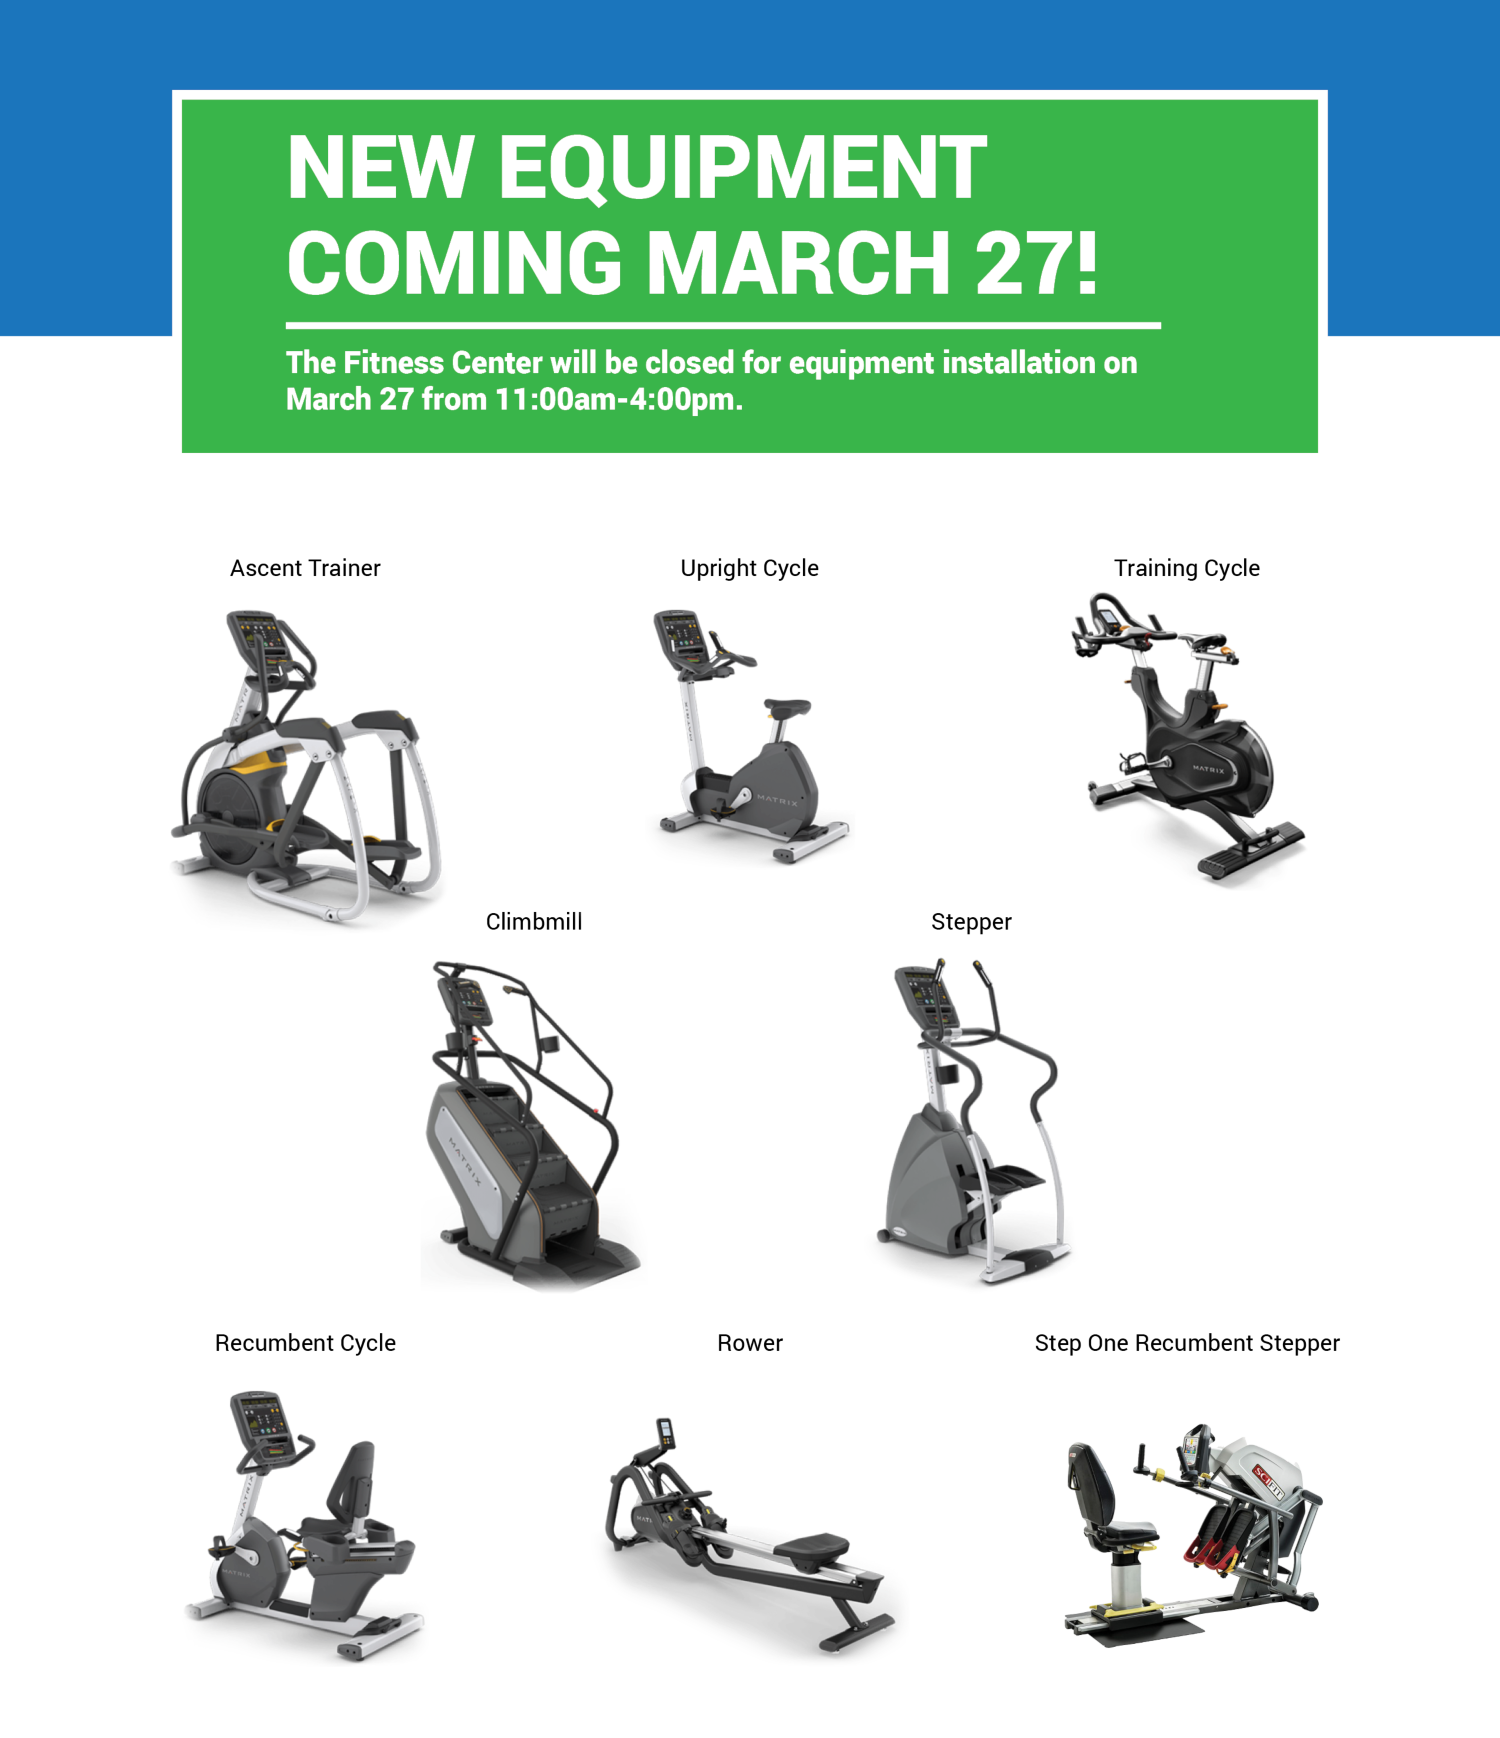 New Equipment Coming March 27 to Community Fitness Center: Ascent Trainer, Upright Cycle, Training Cycle, Climbmill, Stepper, Recumbent Cycle, Rower, Step One Recumbent Stepper